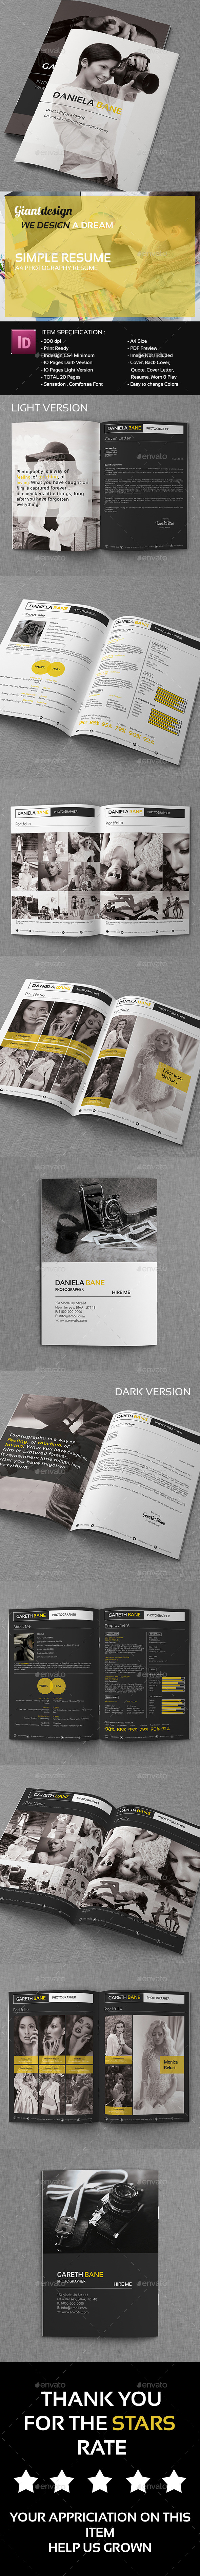 GraphicRiver Resume CV Portfolio Vol3 10099394